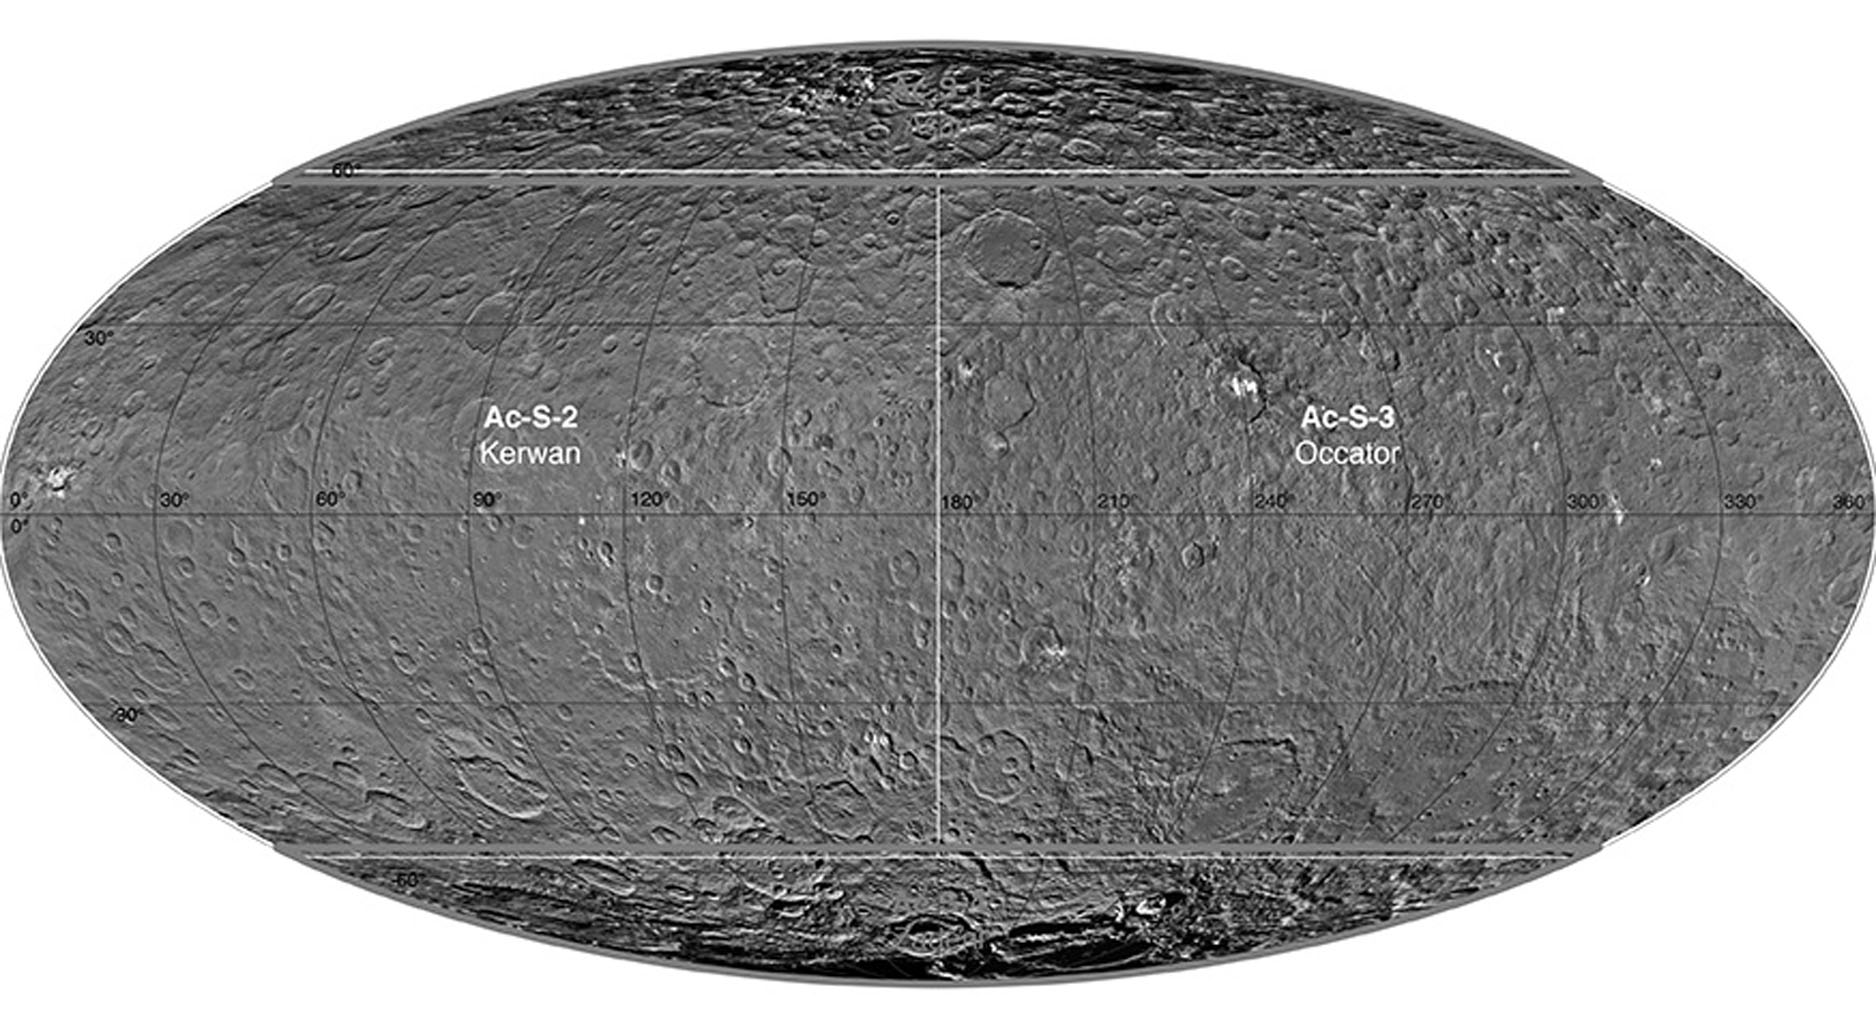 Ceres Survey Atlas